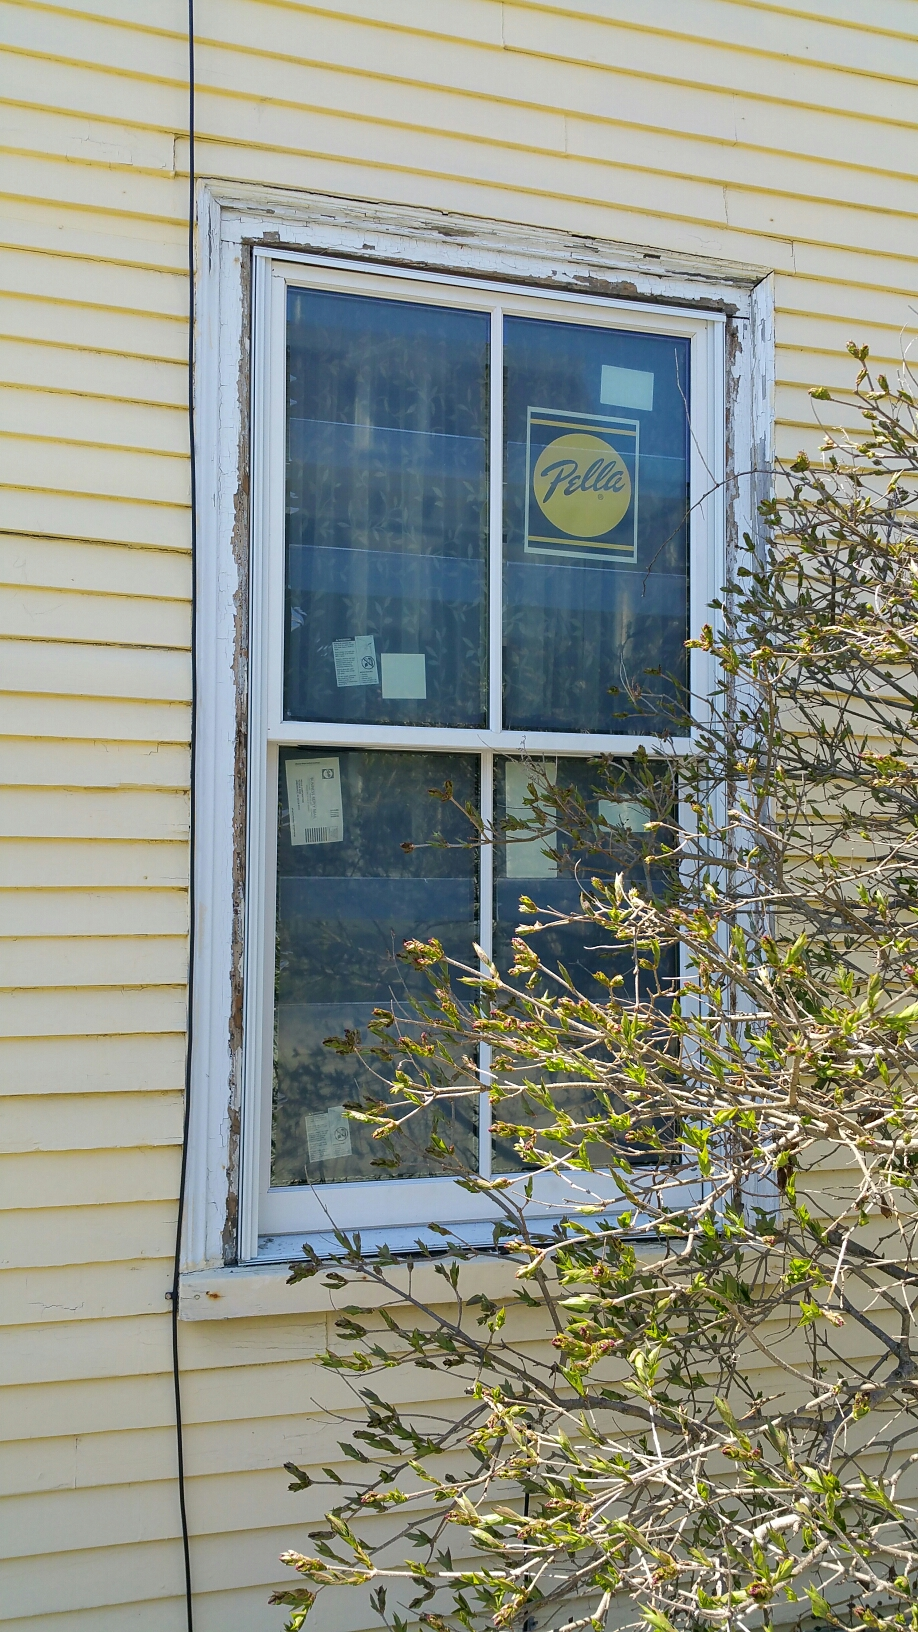 Newport, RI - Still think you should take your chance with a company that doesn't know how to install windows in an historic building? This is what will happen. Cheaper is never better, go with the company with the best window and the most experienced and professional installers in the business, Renewal by Andersen.